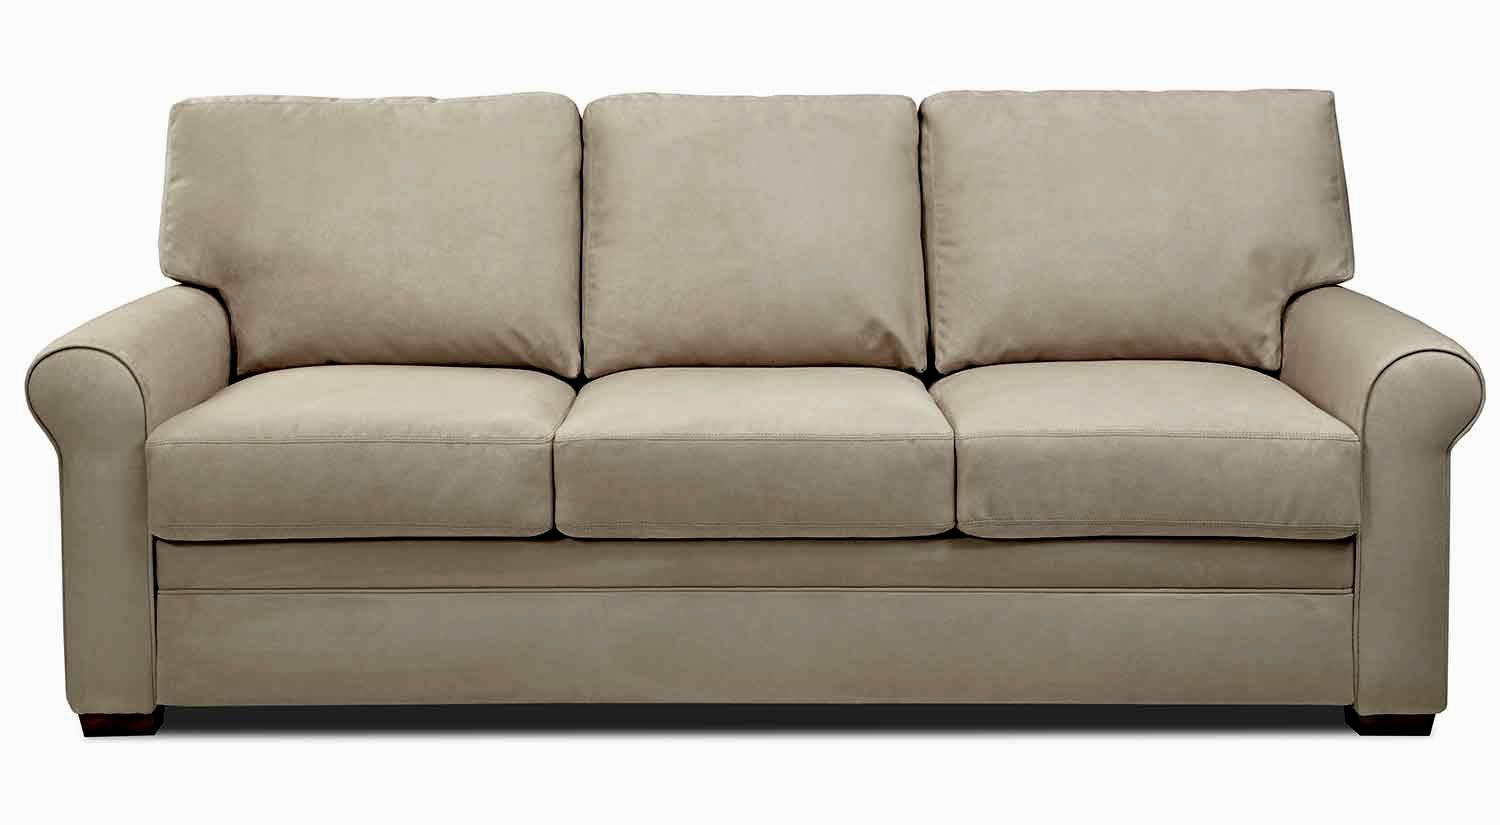 unique macy's furniture sofa collection-Sensational Macy's Furniture sofa Layout